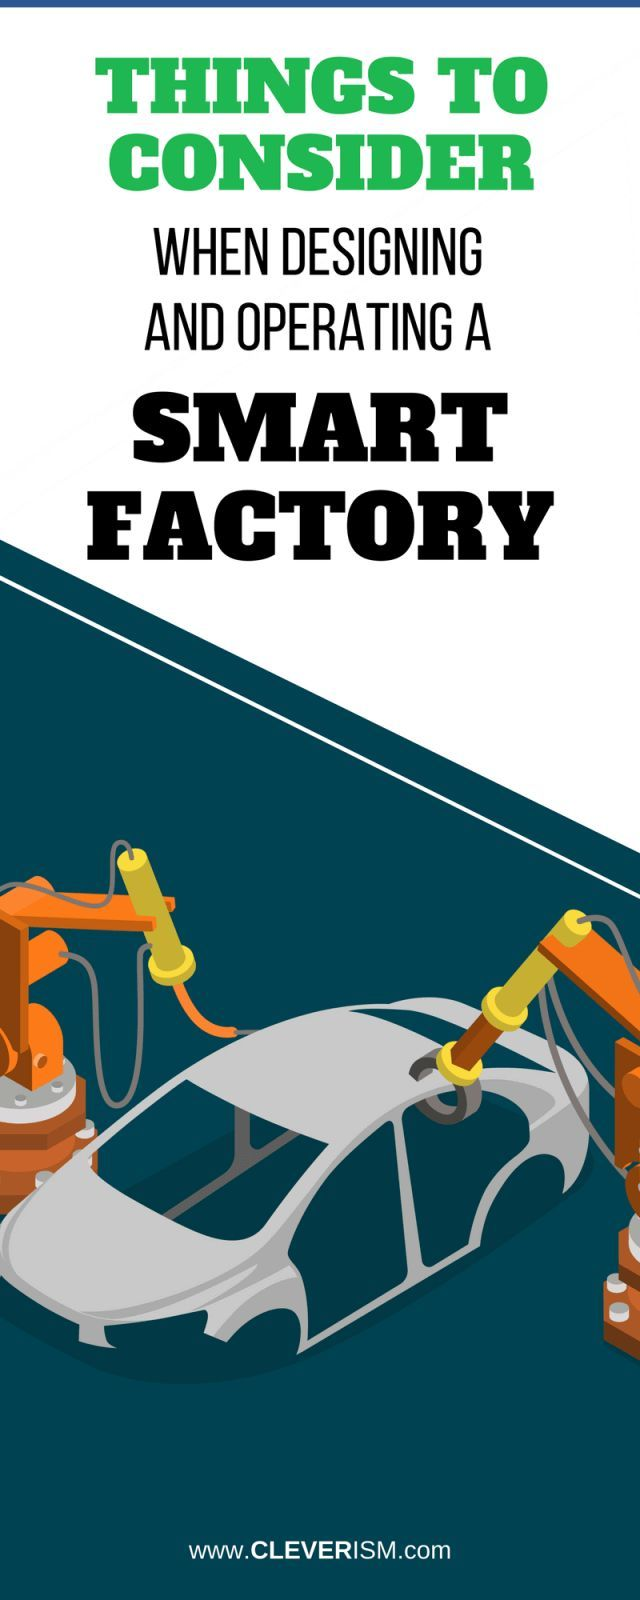 Things to Consider when Designing and Operating a Smart Factory